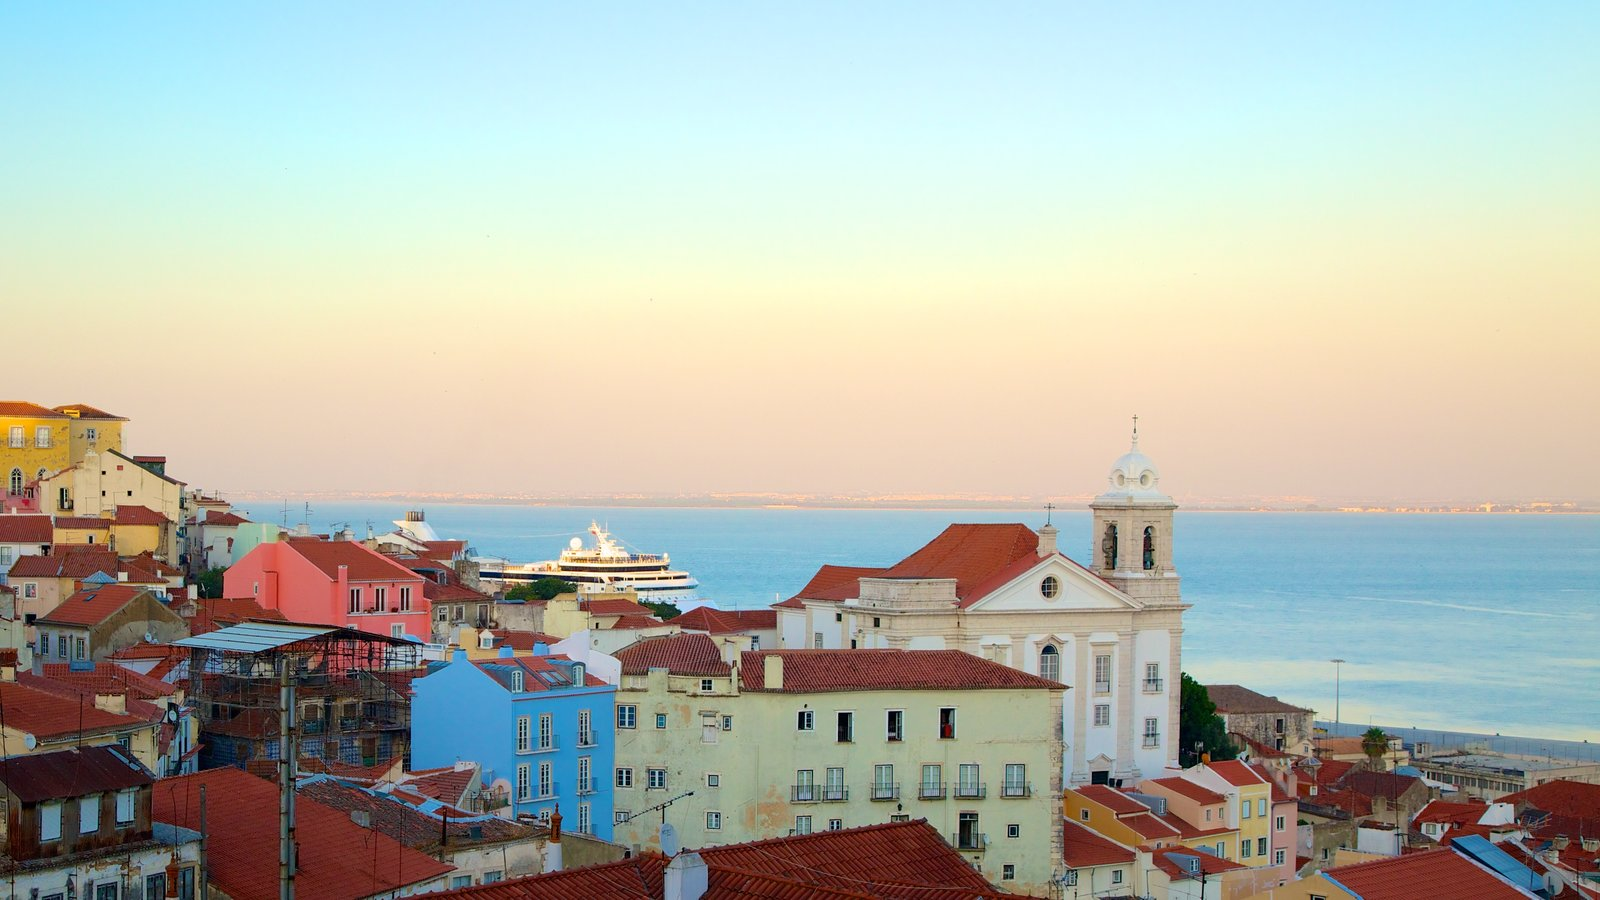 Alfama featuring a coastal town, a sunset and heritage architecture